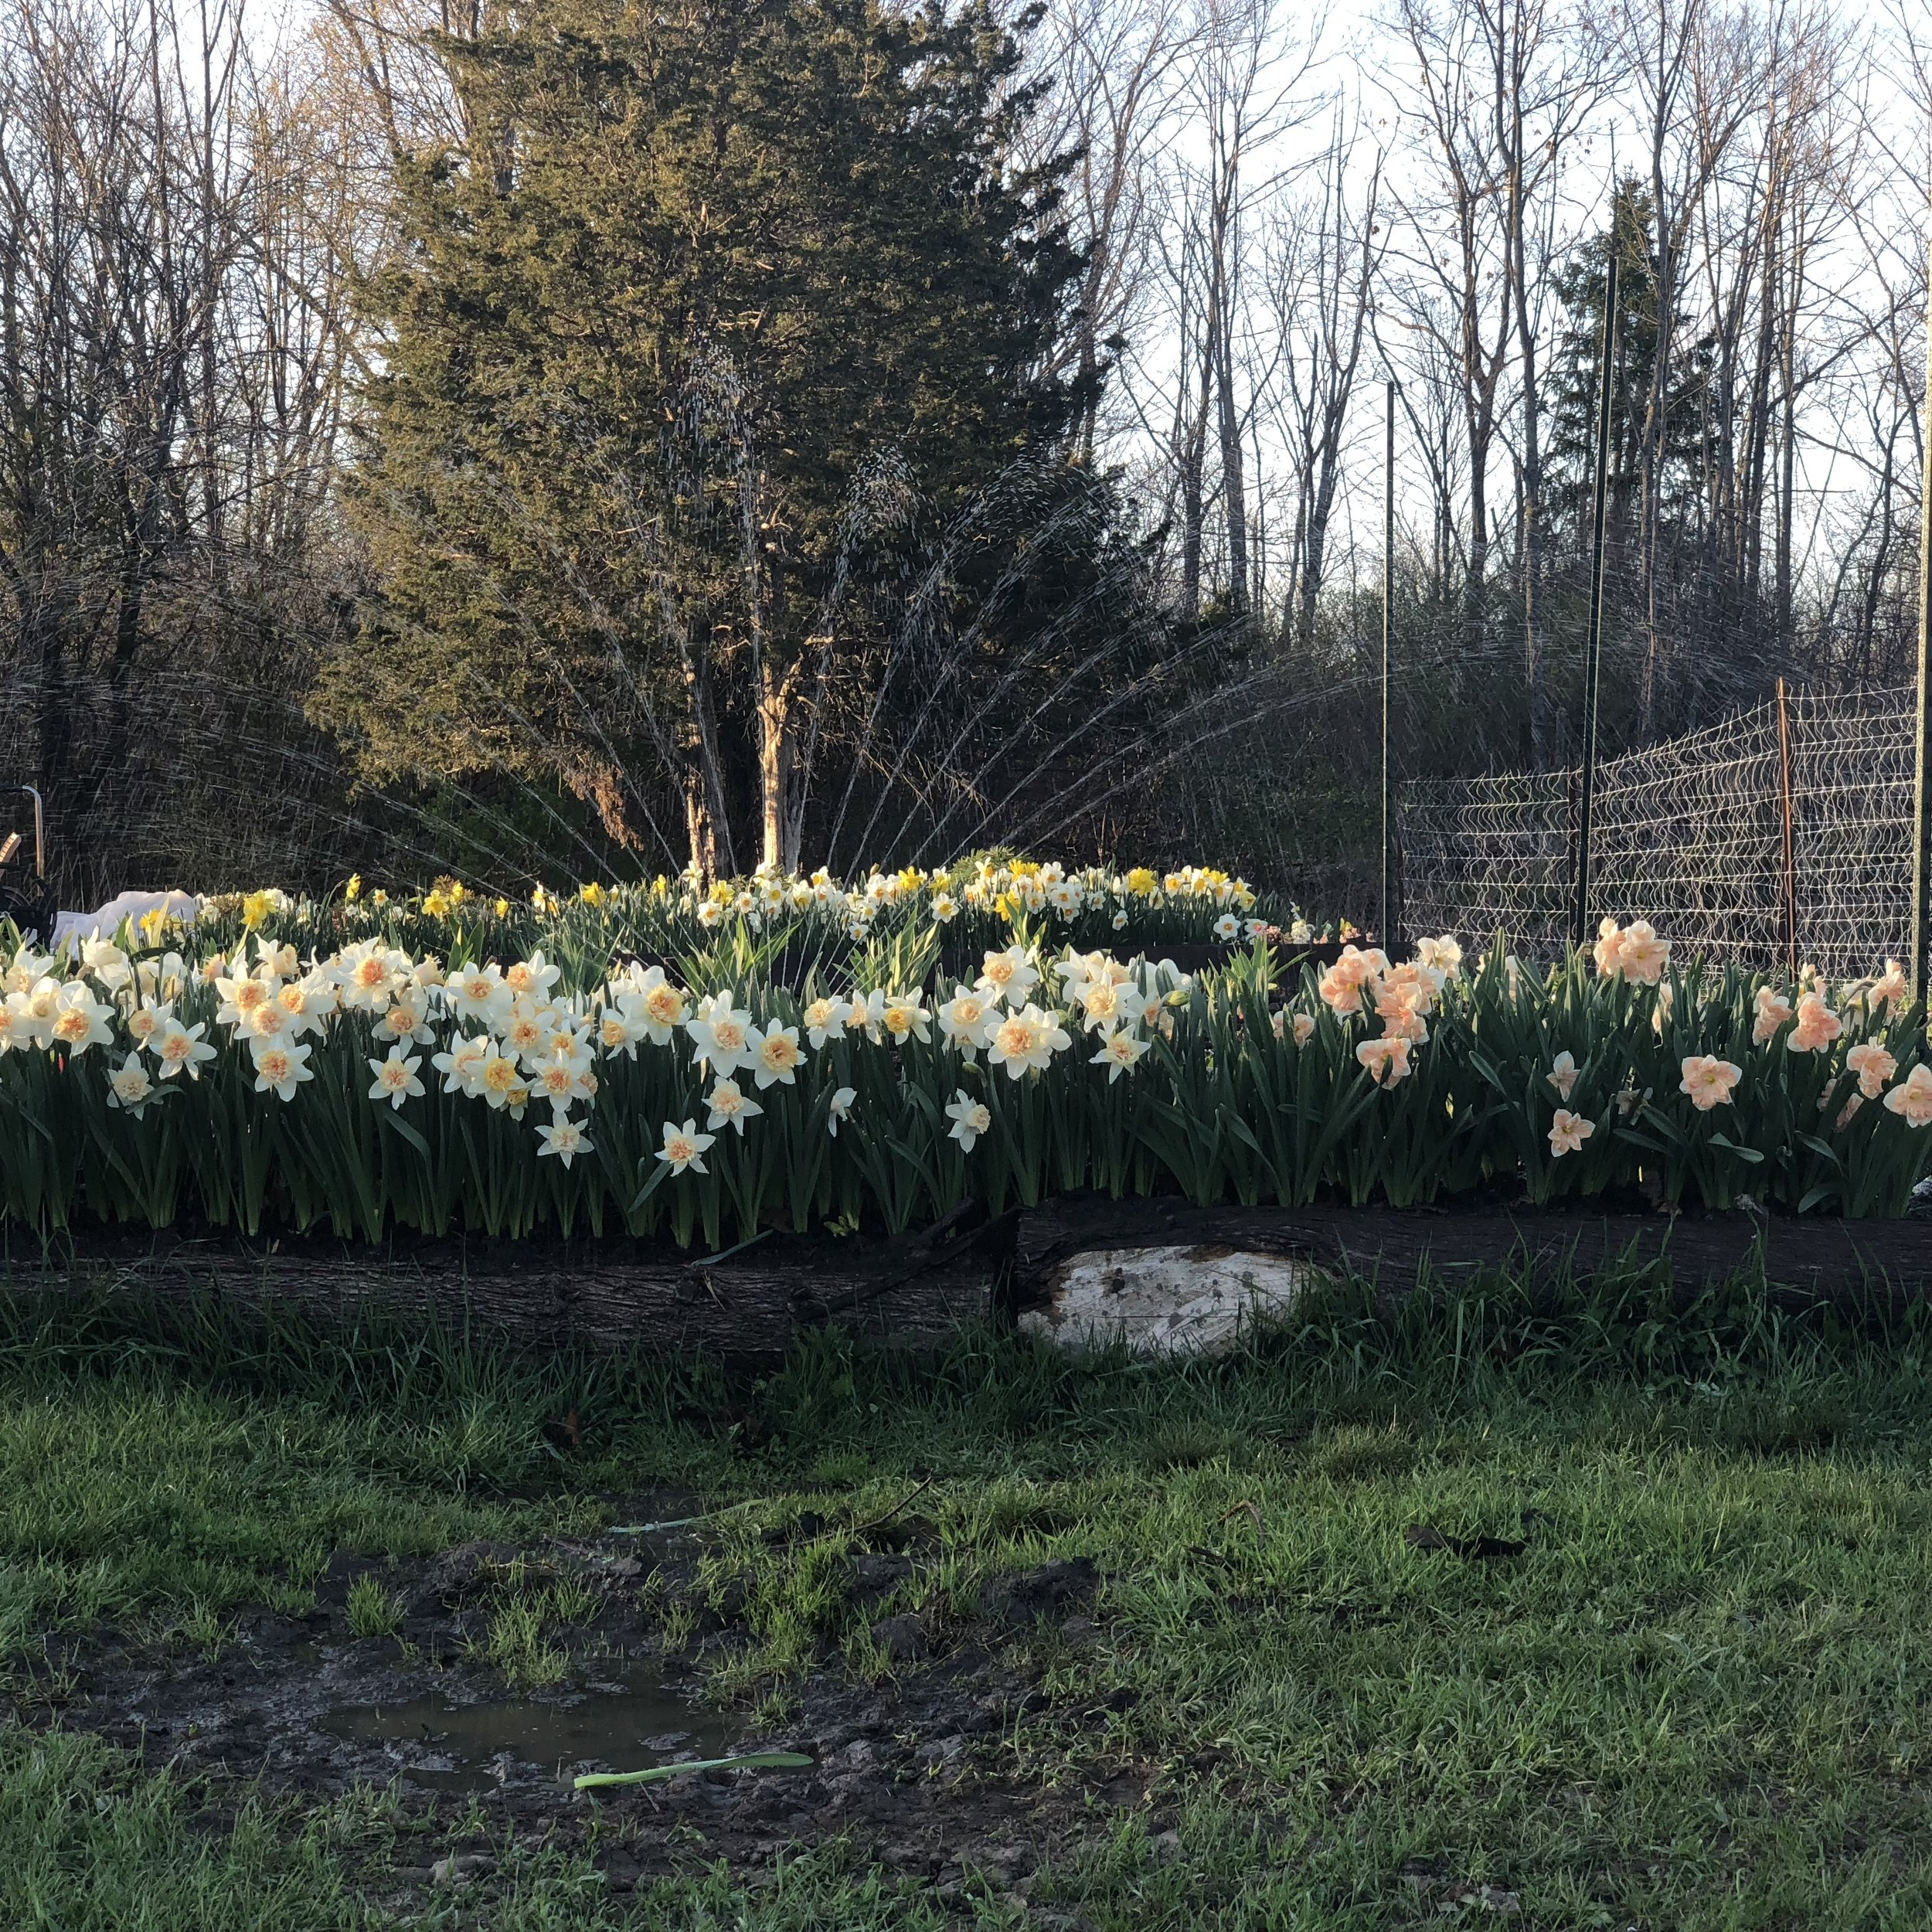 Front of perennial bed lined with daffodils and second row of daffodils is in front of a peony bed.